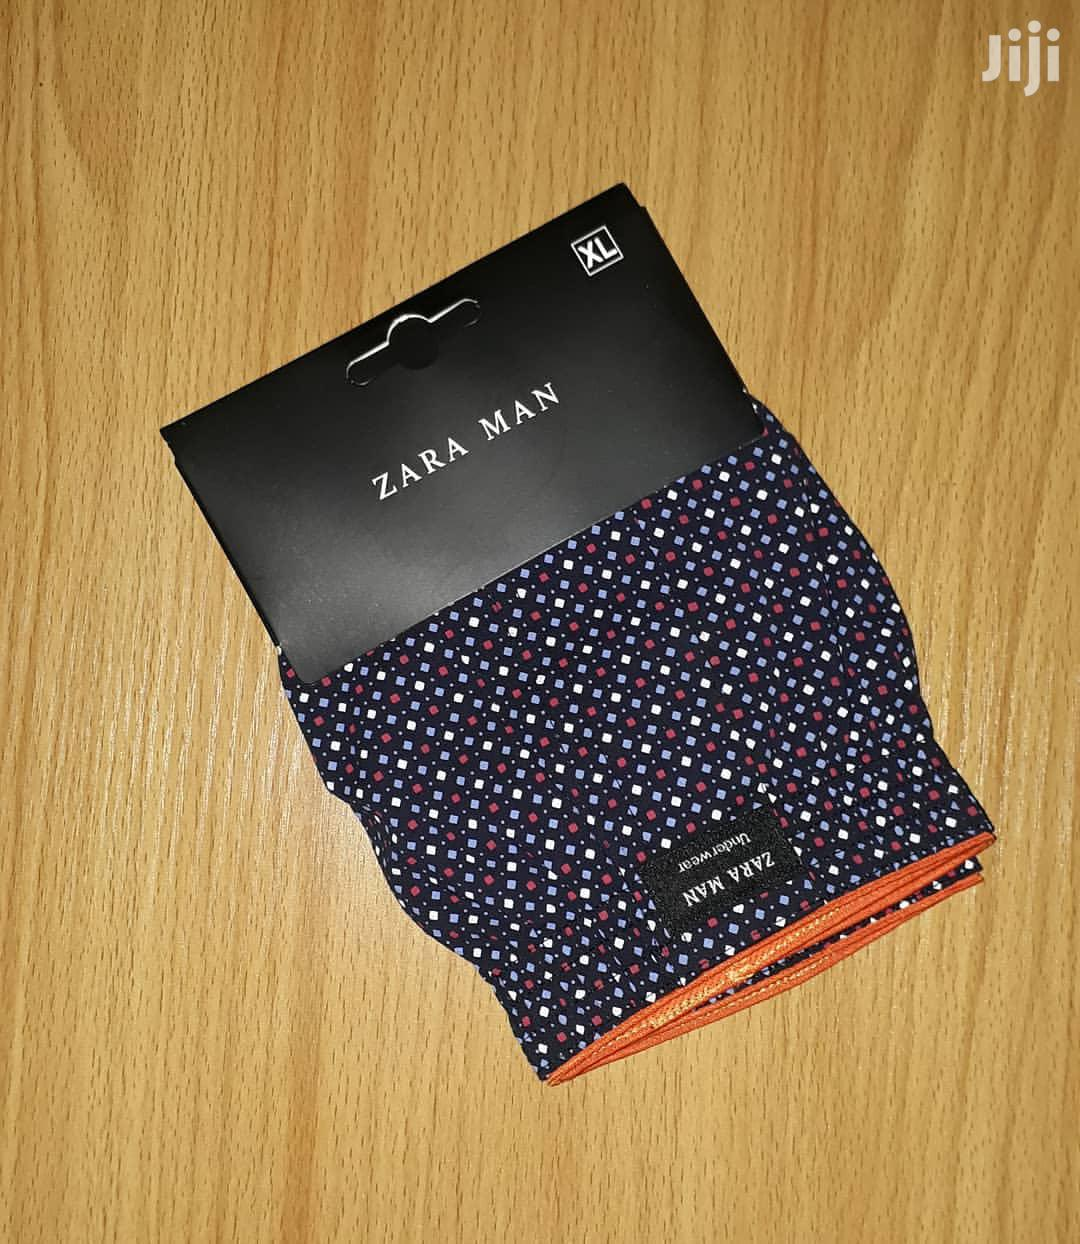 Zara Man Boxers | Clothing for sale in Achimota, Greater Accra, Ghana